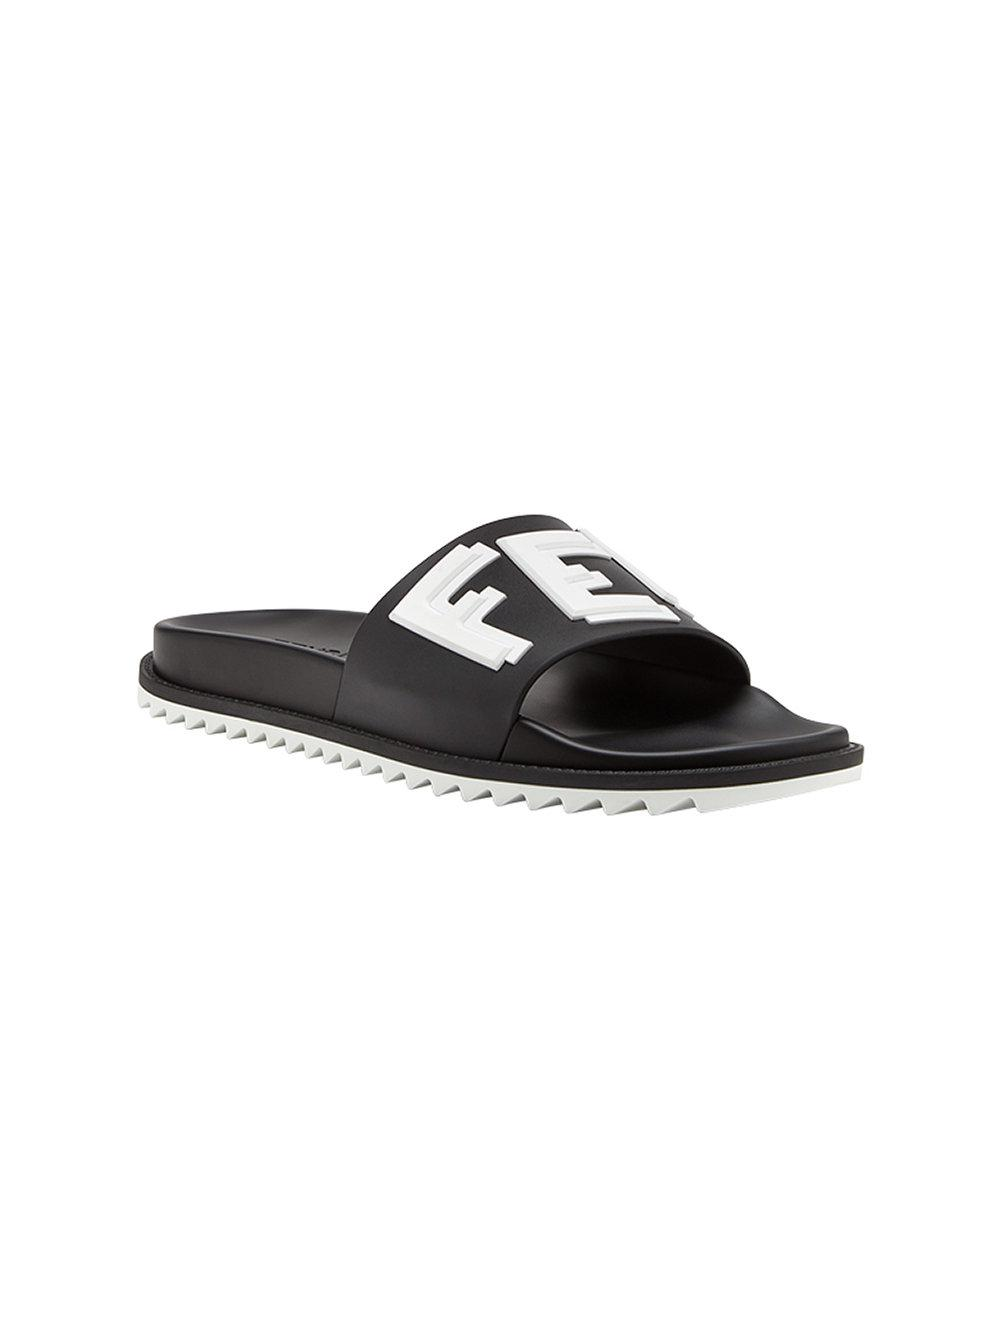 2823a0eb1c49 Lyst - Fendi Logo Print Pool Slides in Black for Men